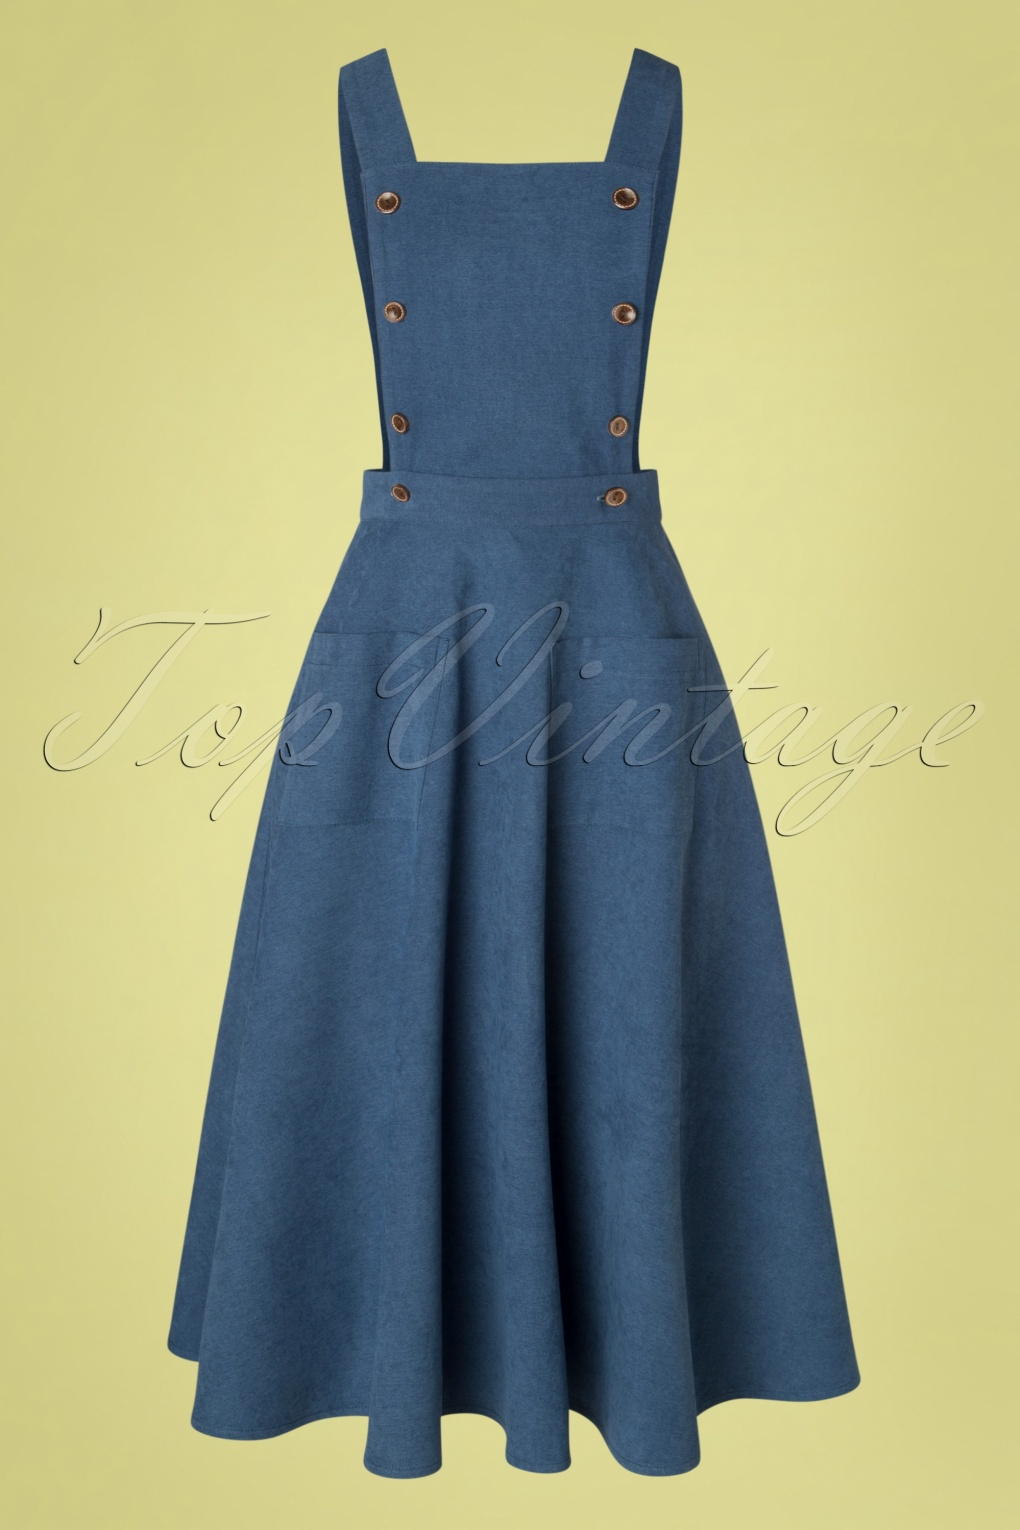 What Did Women Wear in the 1950s? 1950s Fashion Guide 50s Book Smart Pinafore Swing Dress in Blue  AT vintagedancer.com